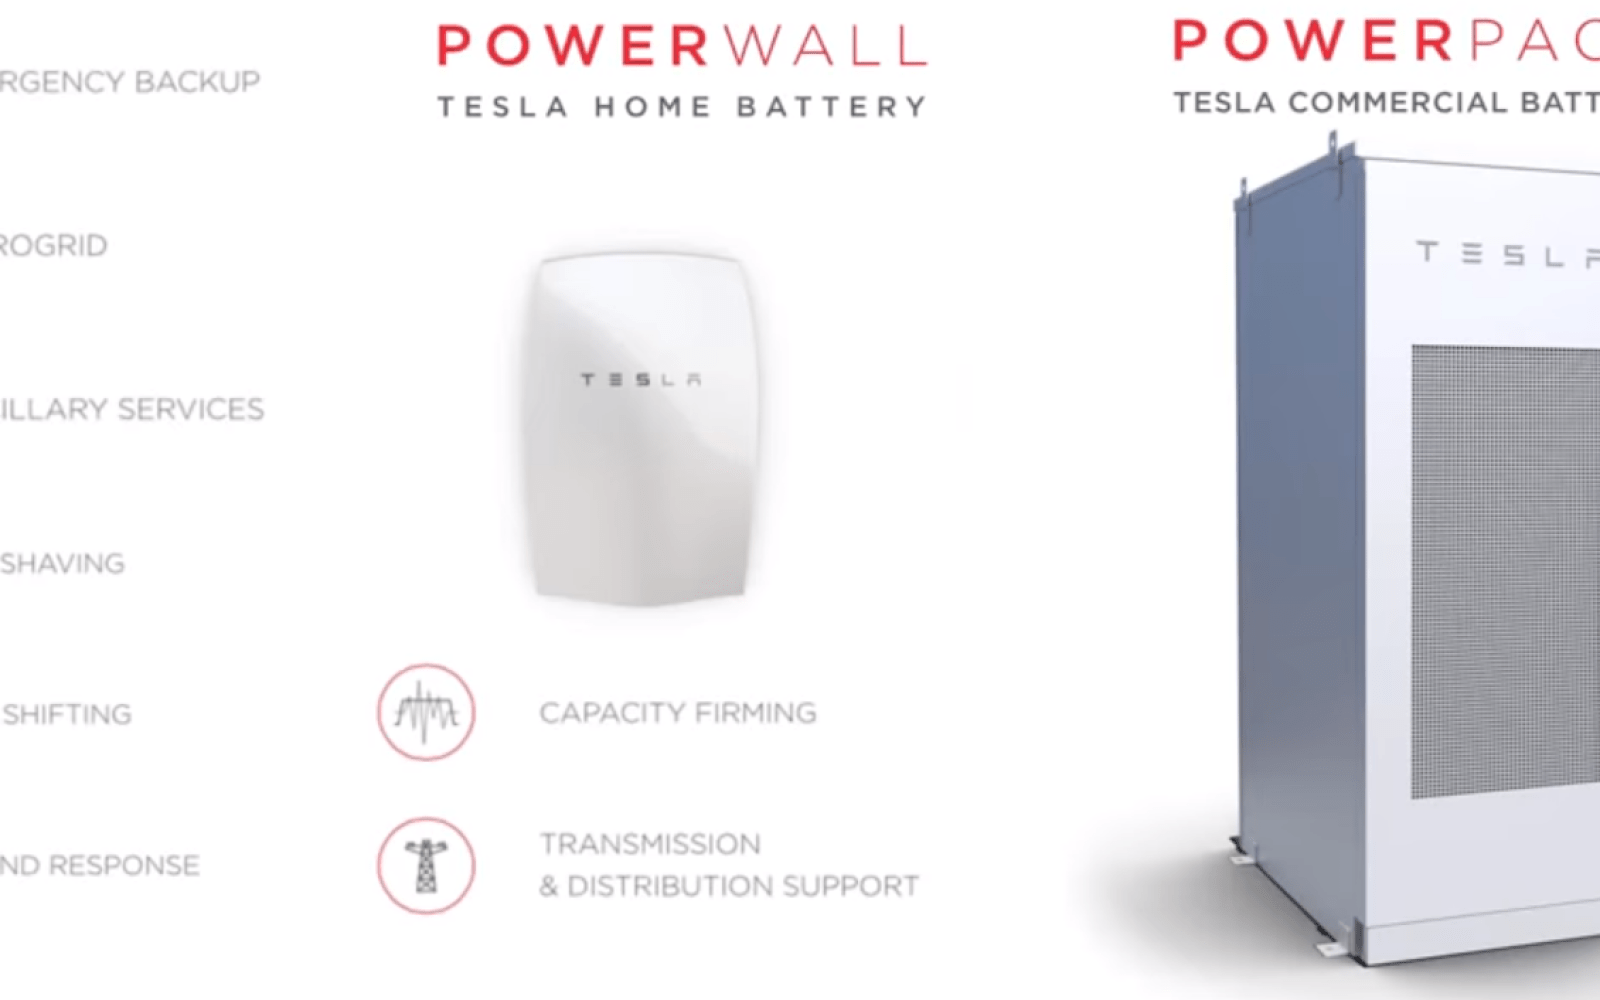 Tesla Energy executive talks 'next gen inverter', hints at upcoming Vehicle-to-Grid capacity for Tesla